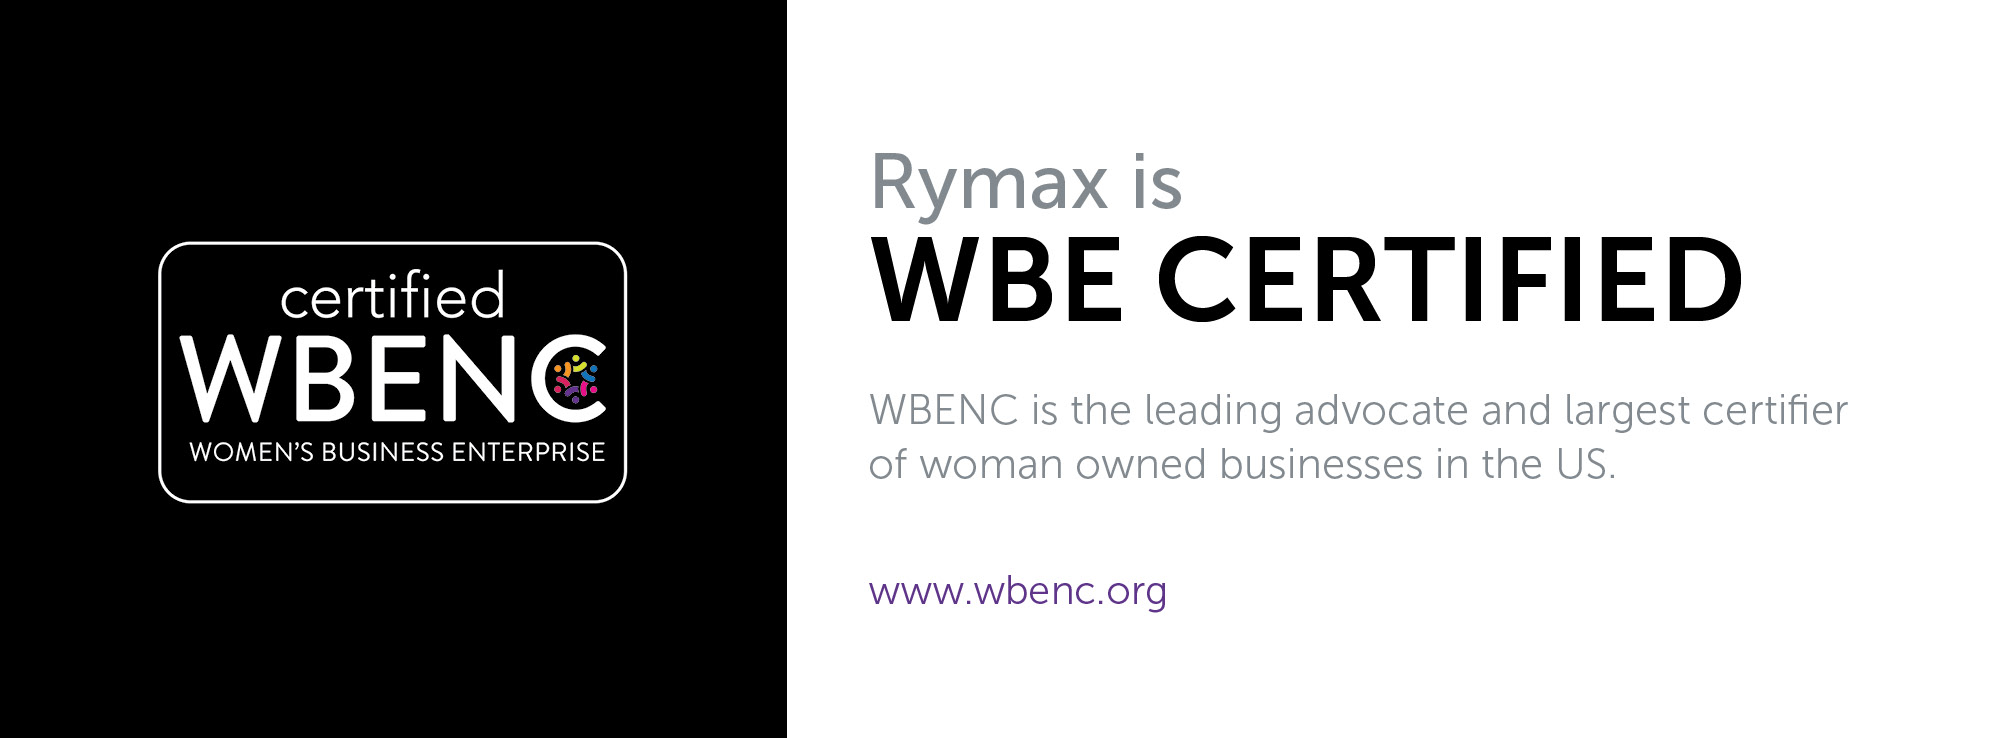 Rymax Is WBE Certified